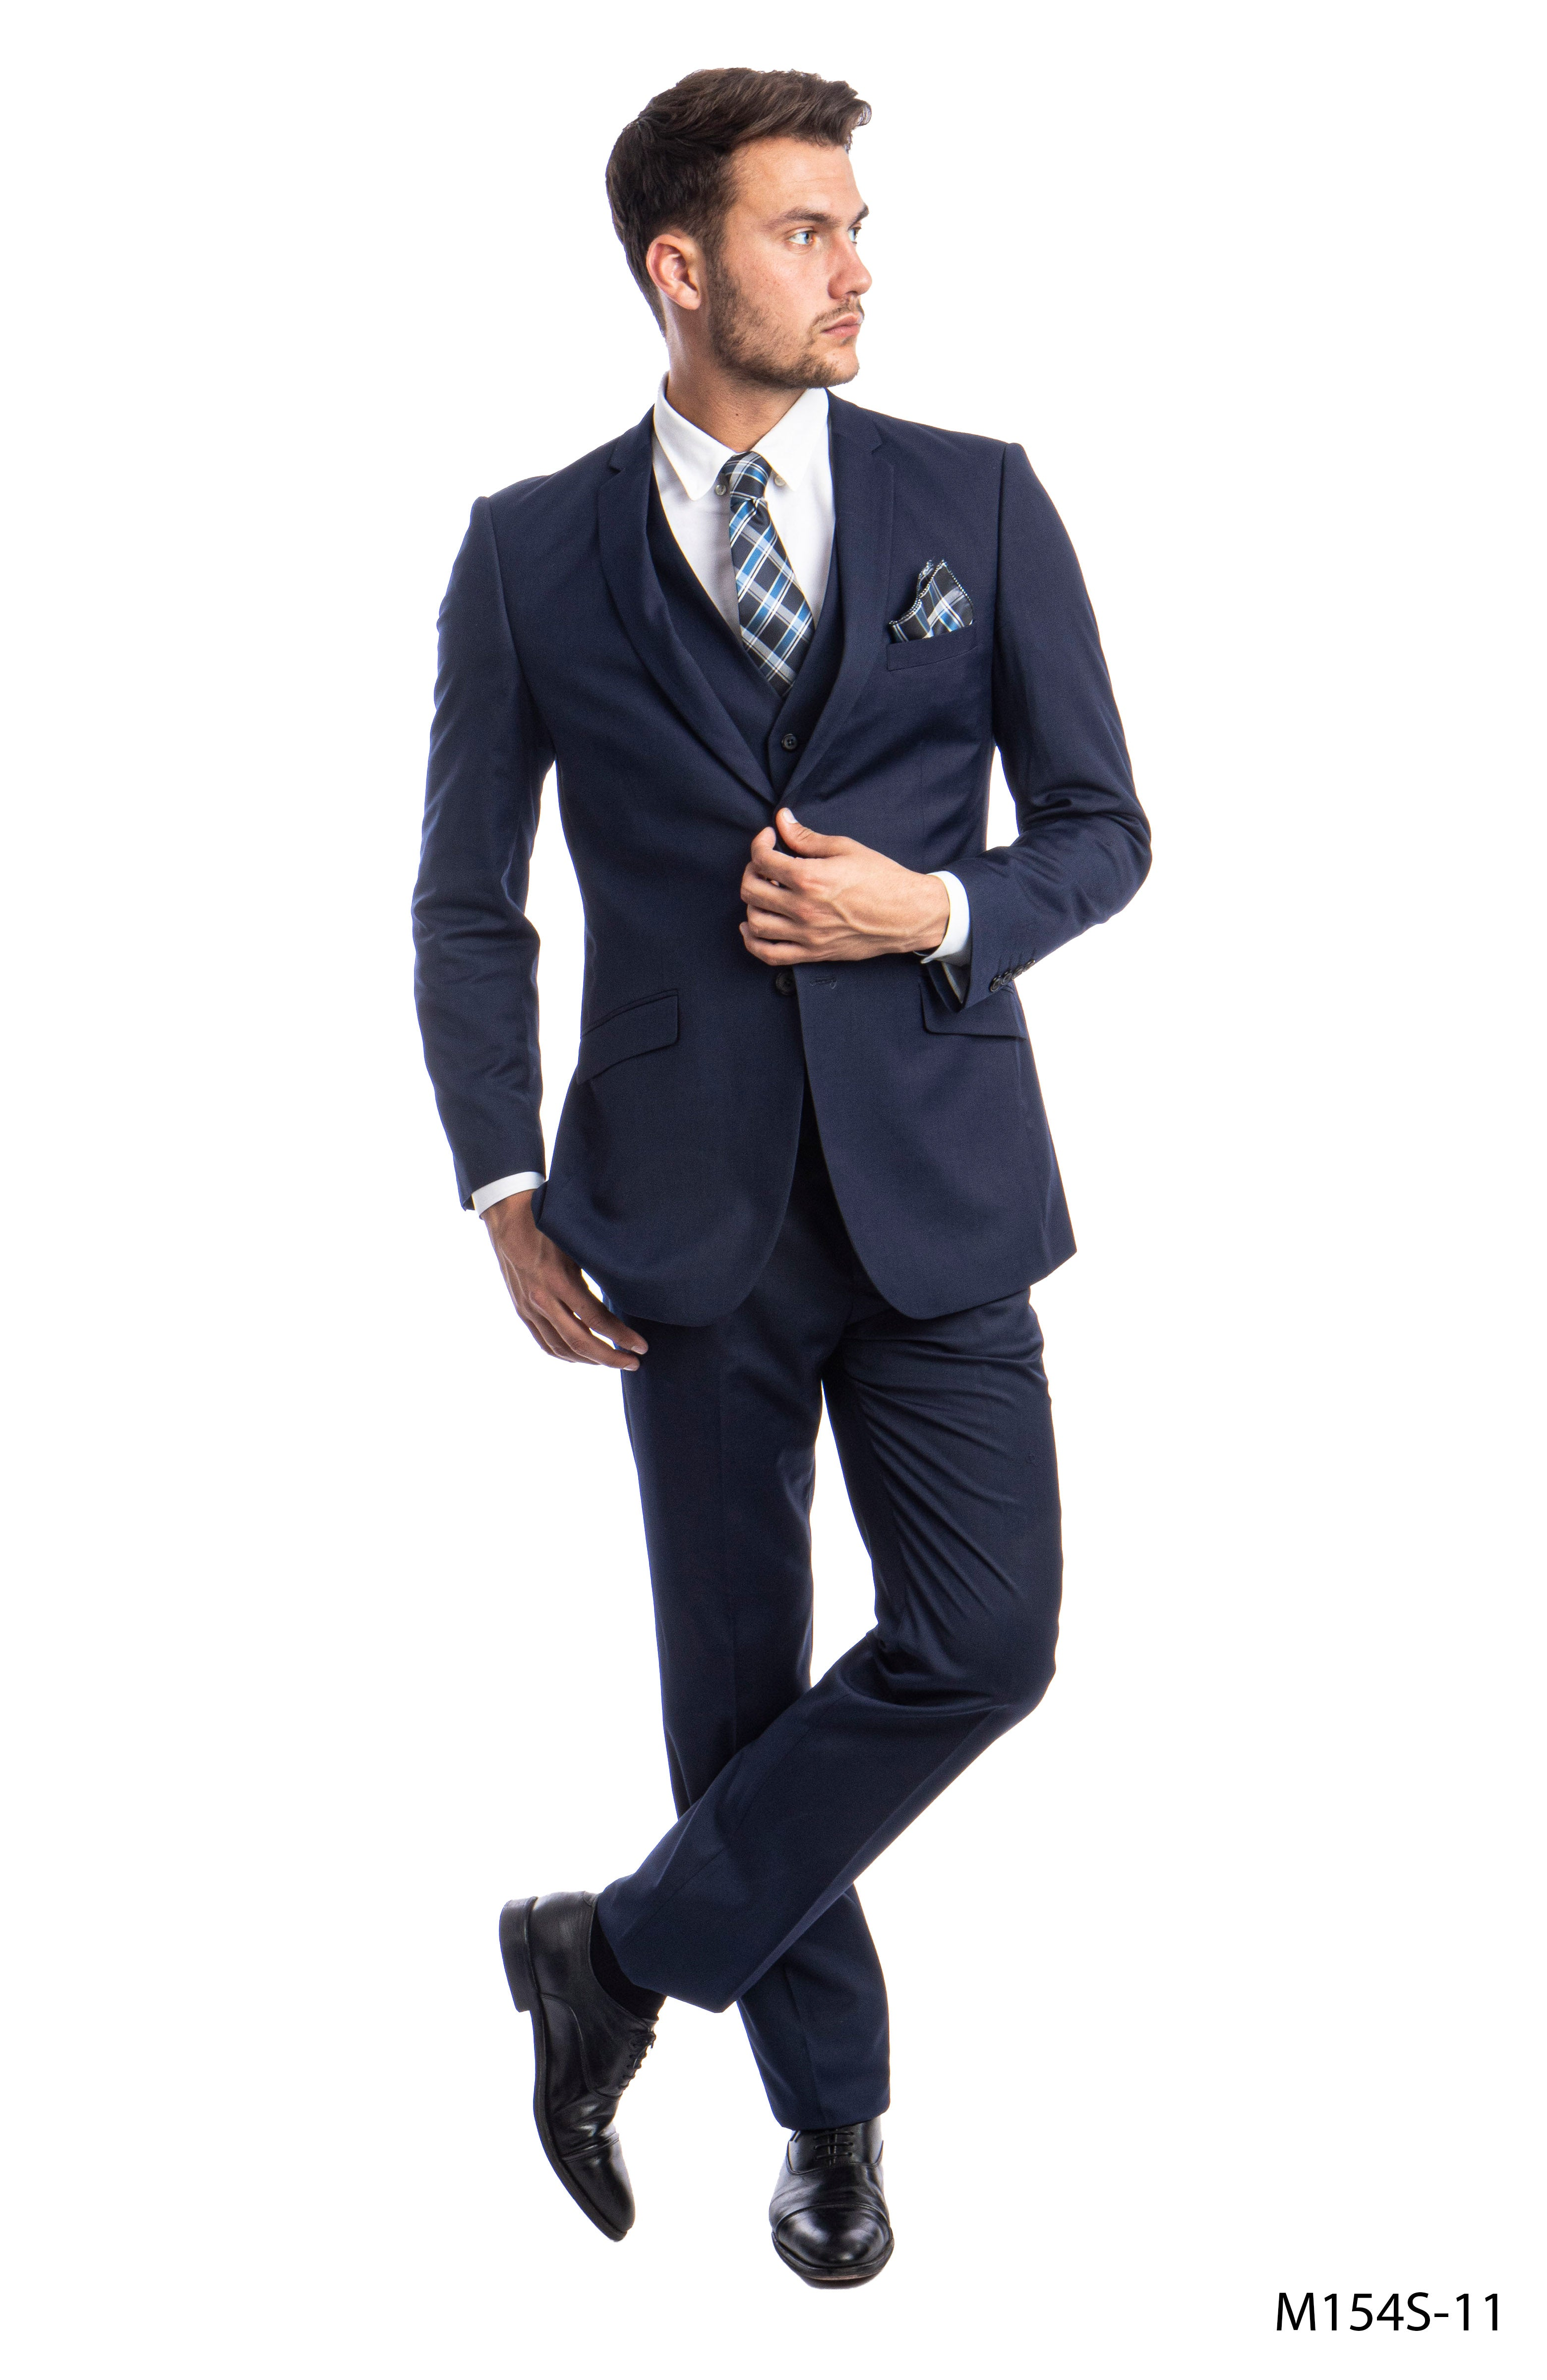 Navy Suit For Men Formal Suits For All Ocassions